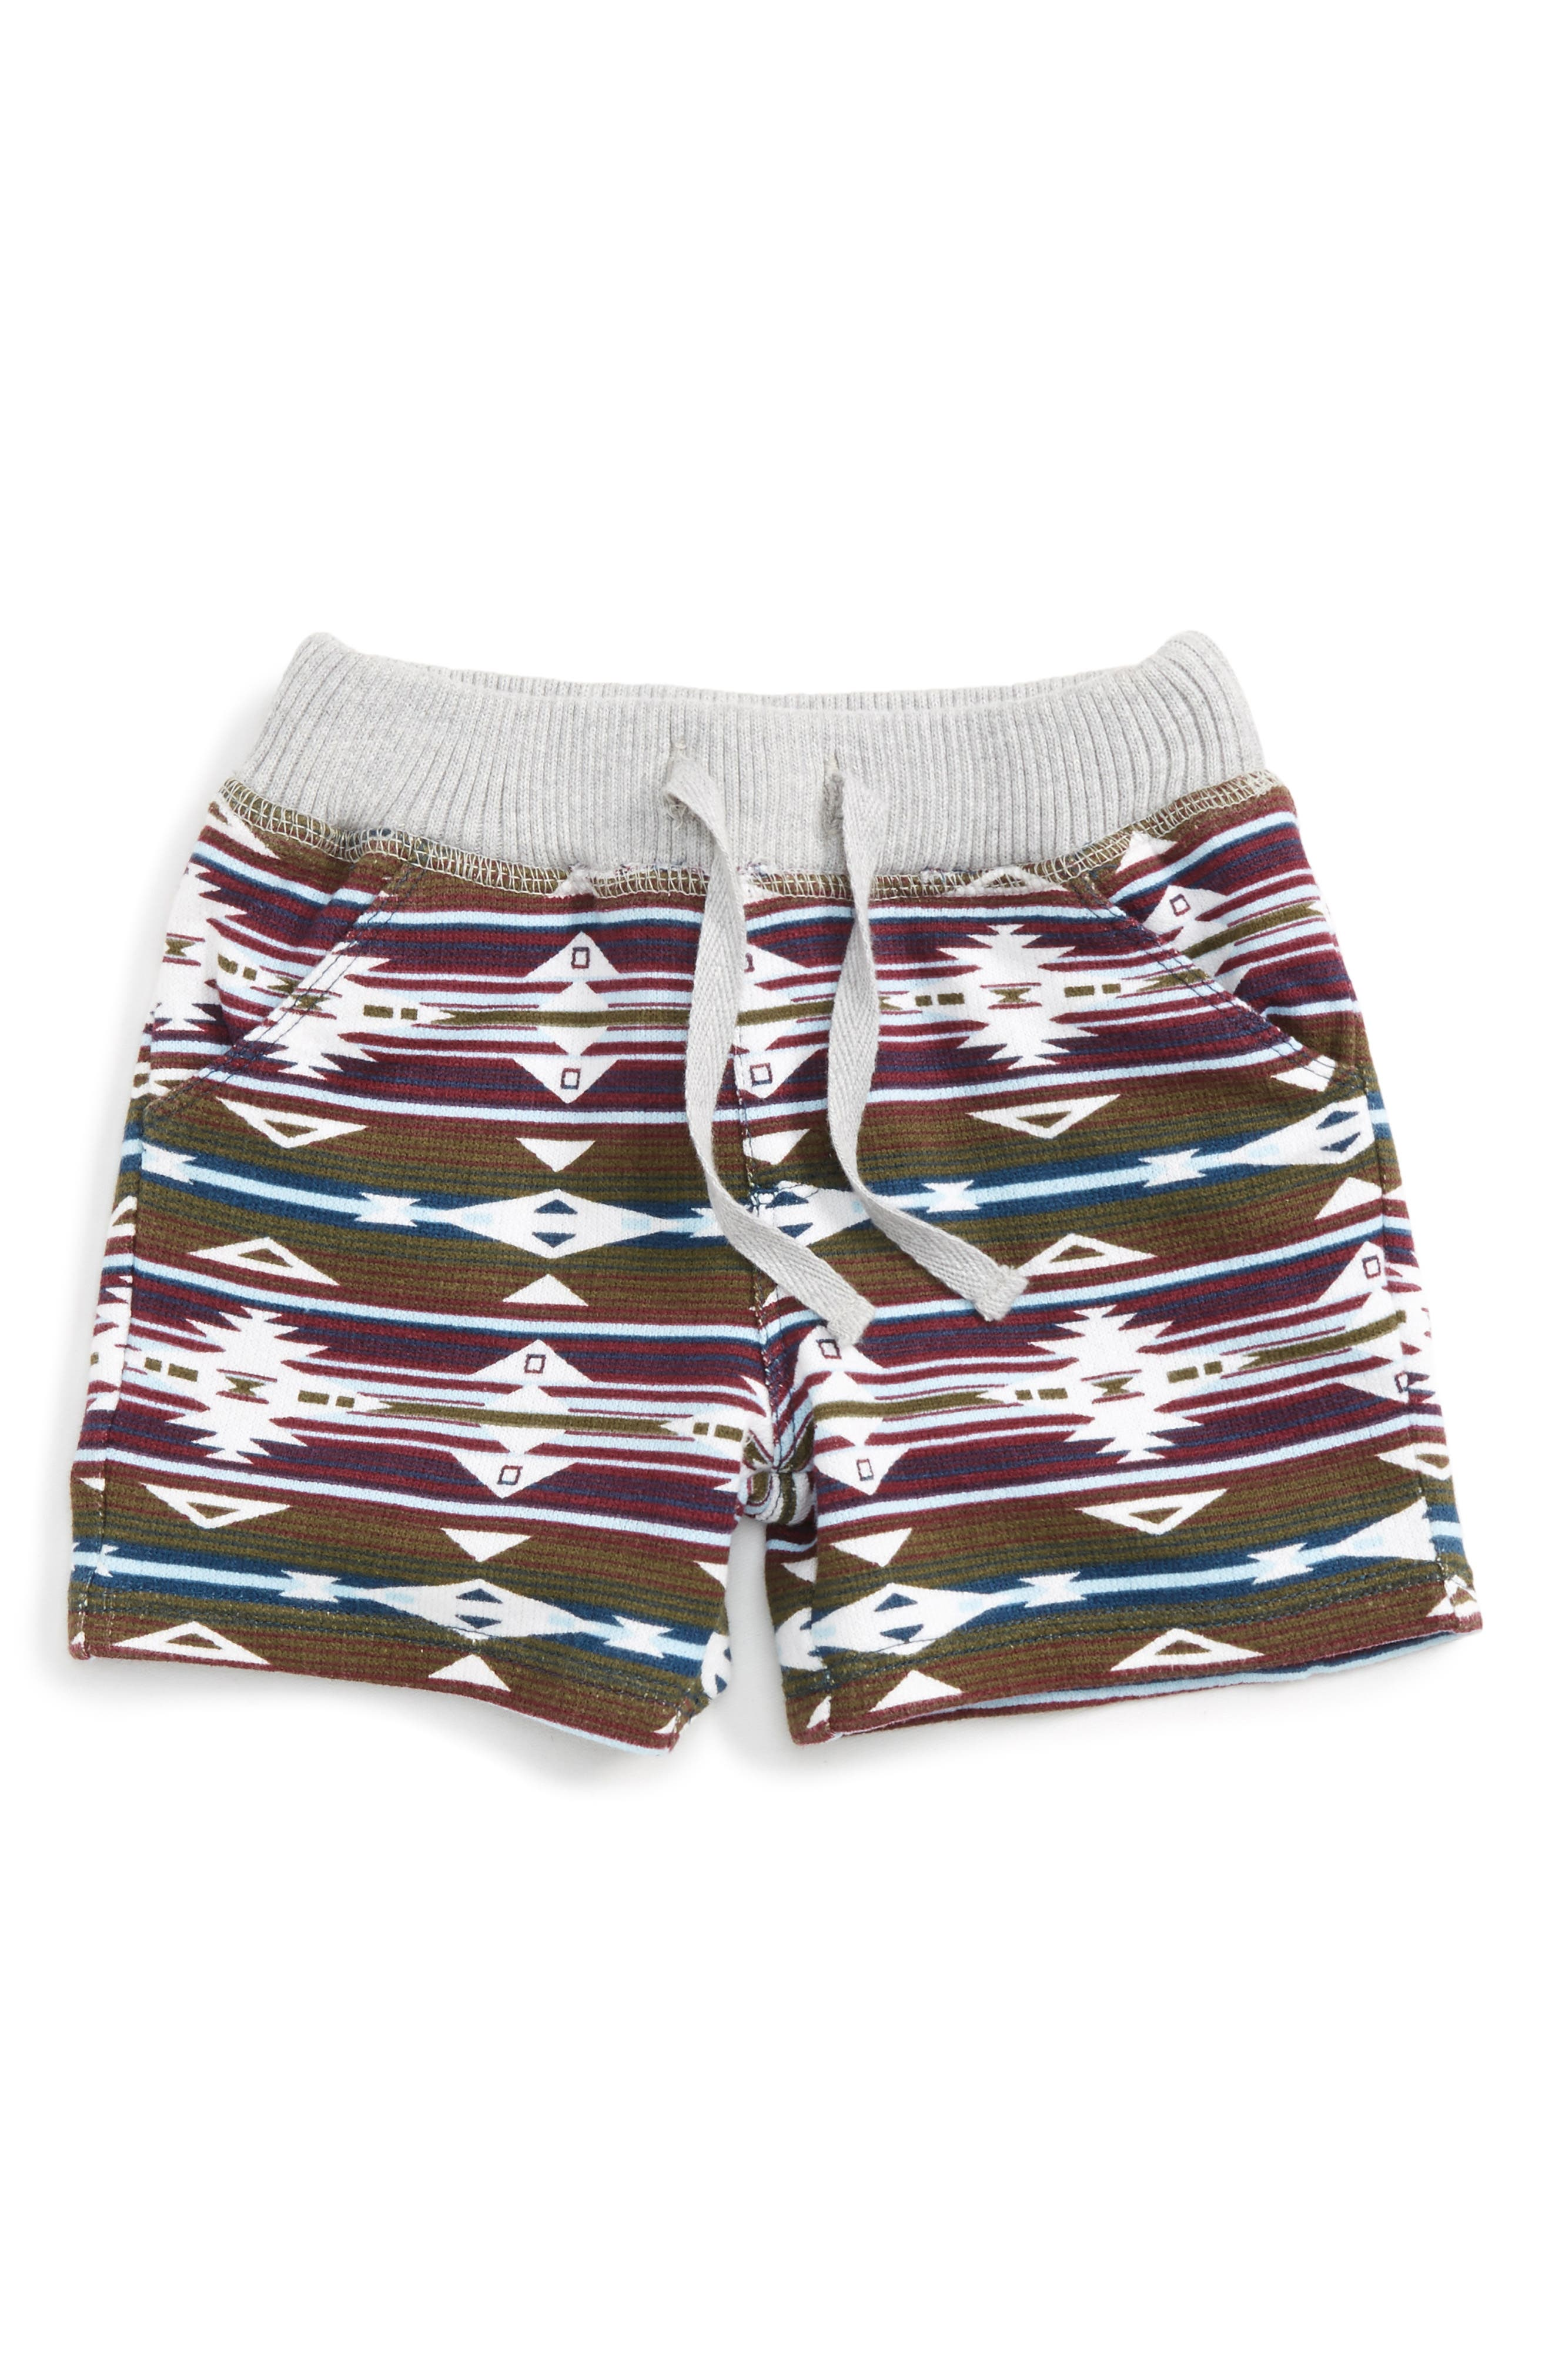 Tucker + Tate Knit Shorts (Baby Boys)